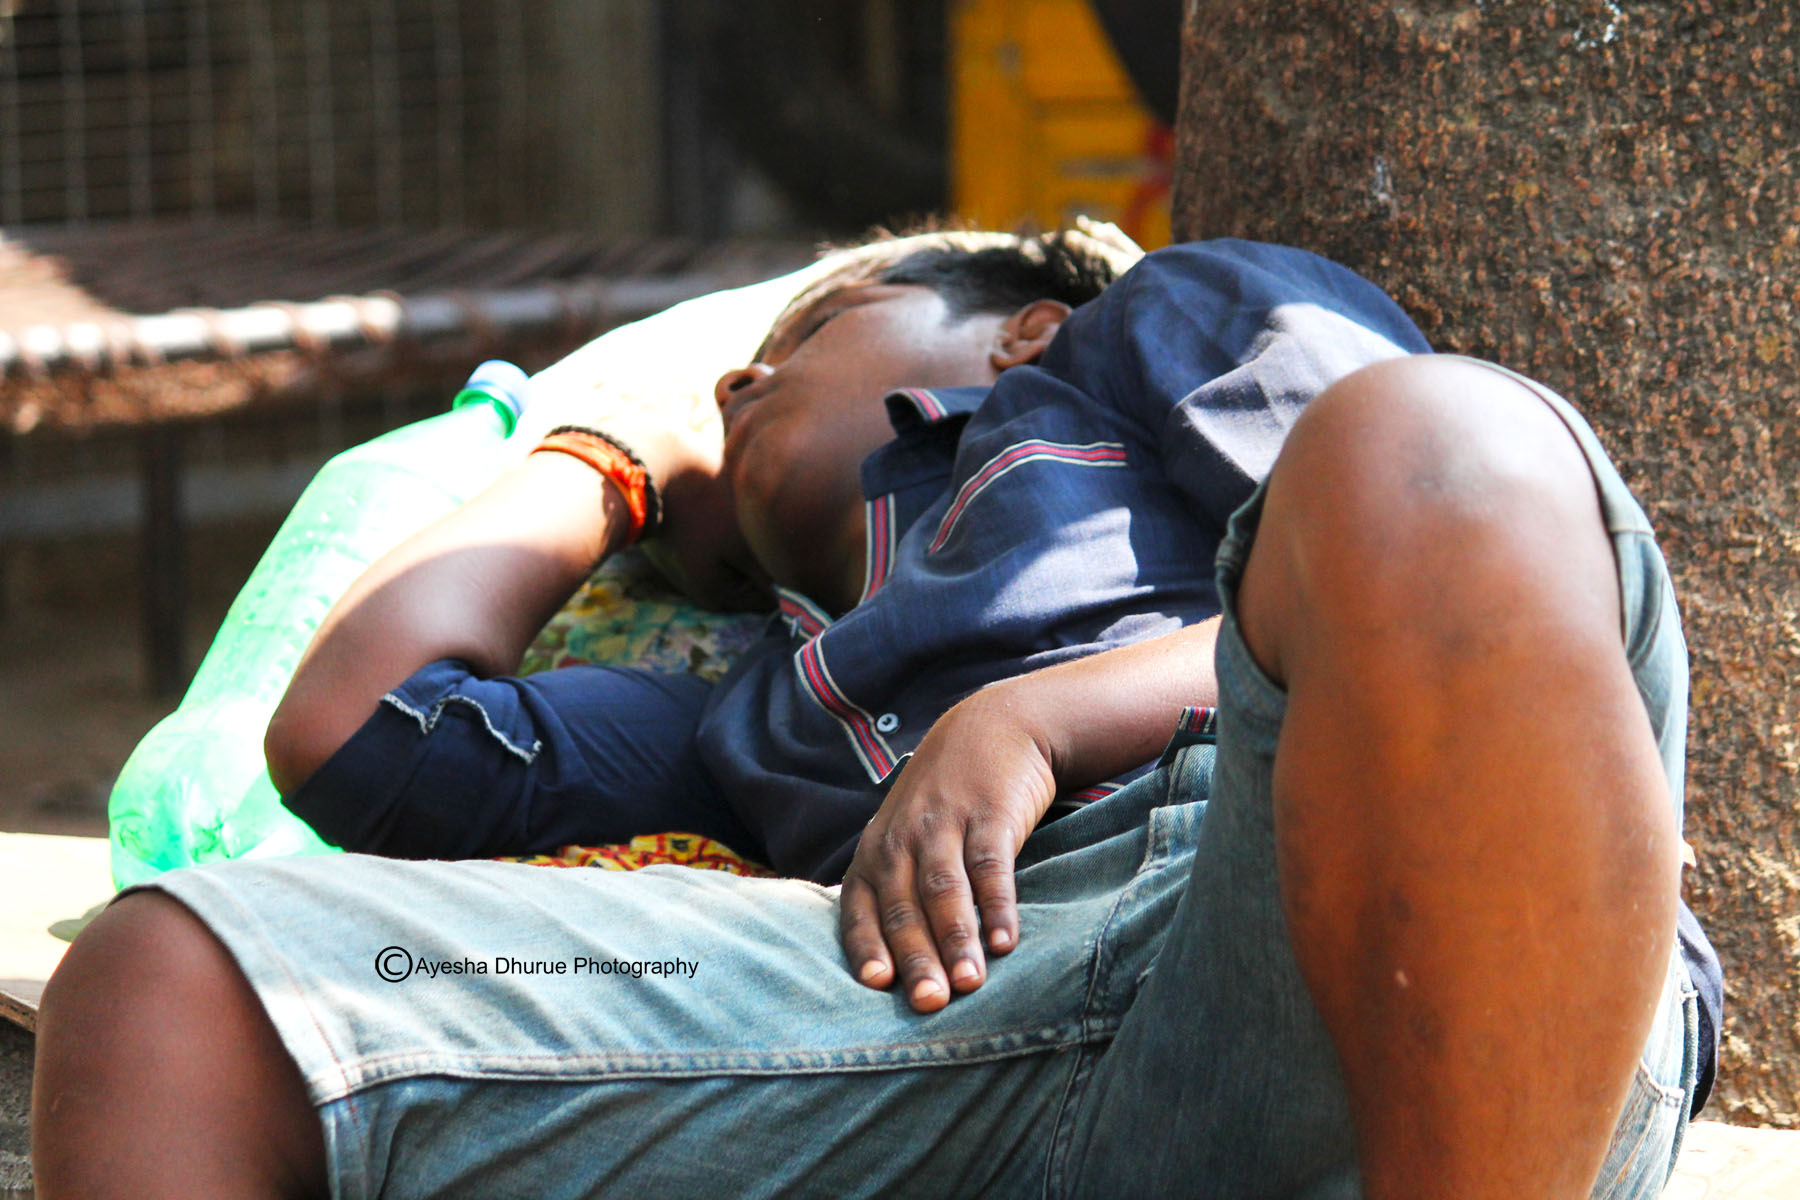 mumbai people photography children labor work street ayesha dhurue photography image gallery  (2)